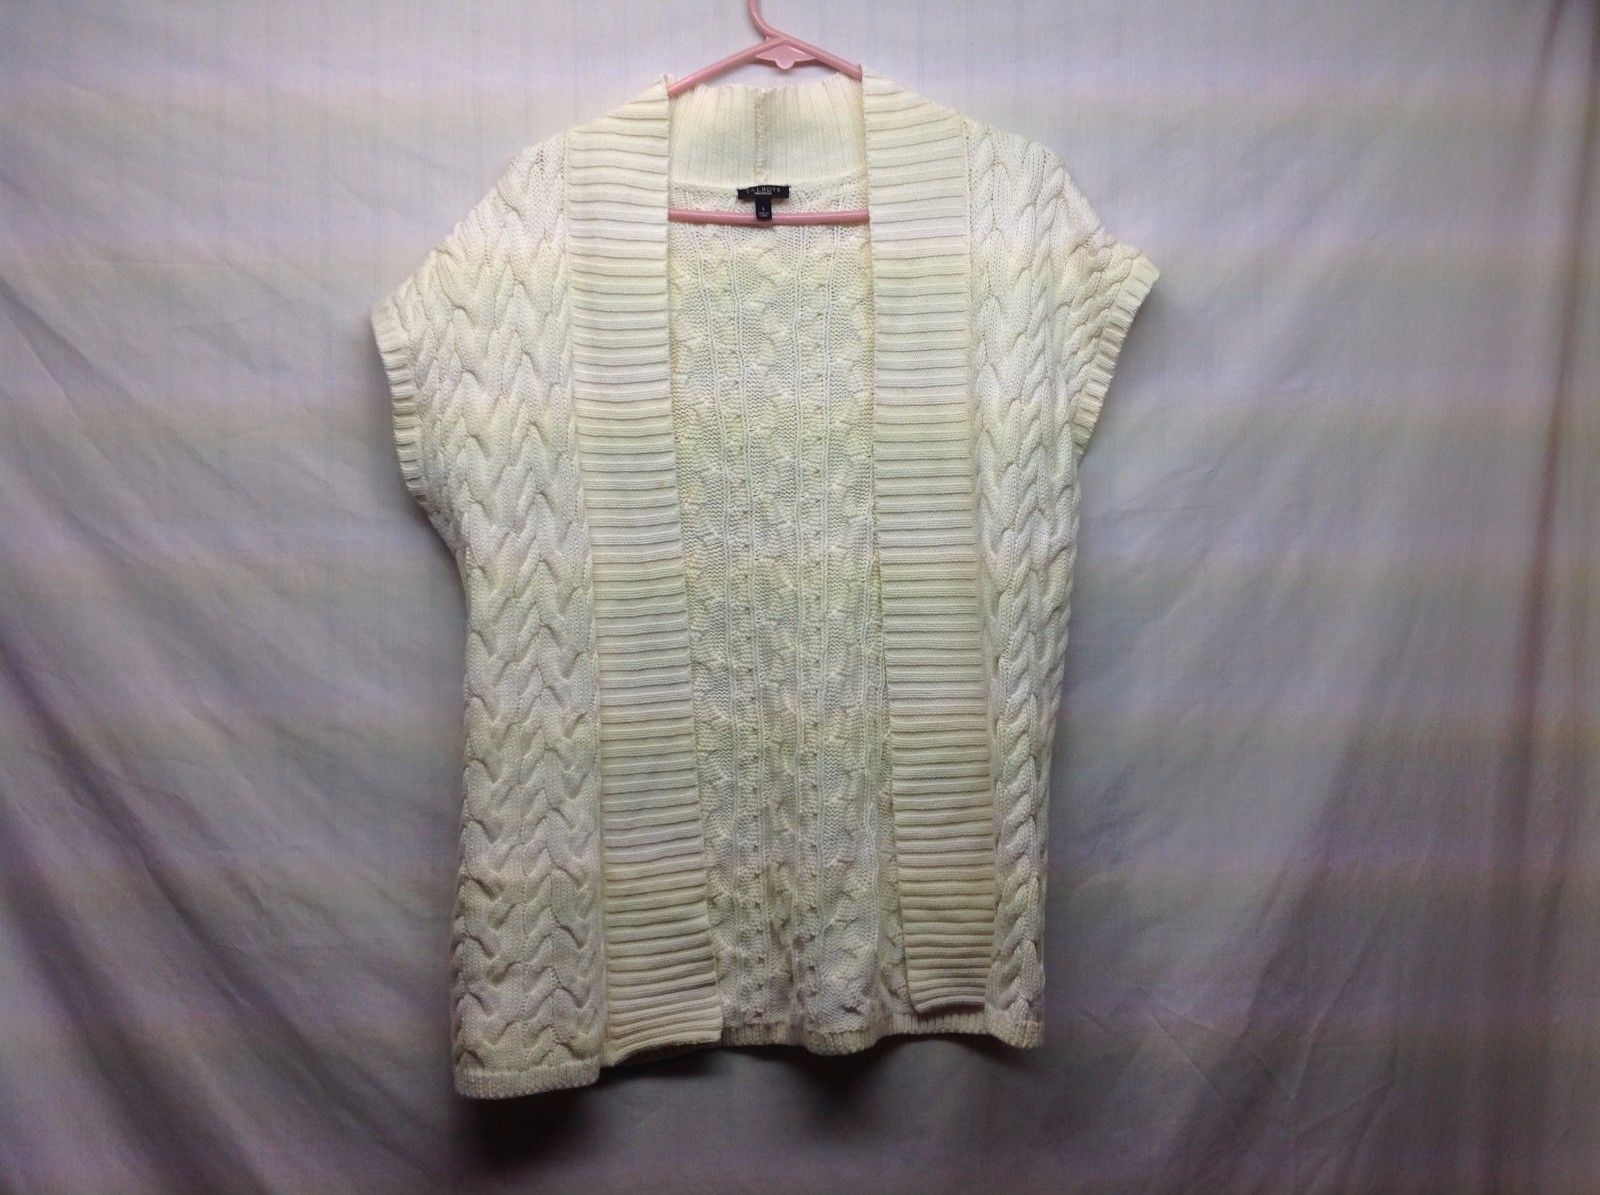 Ladies Cream Colored Short Sleeve Knit Cardigan Sweater by Talbots Sz LG